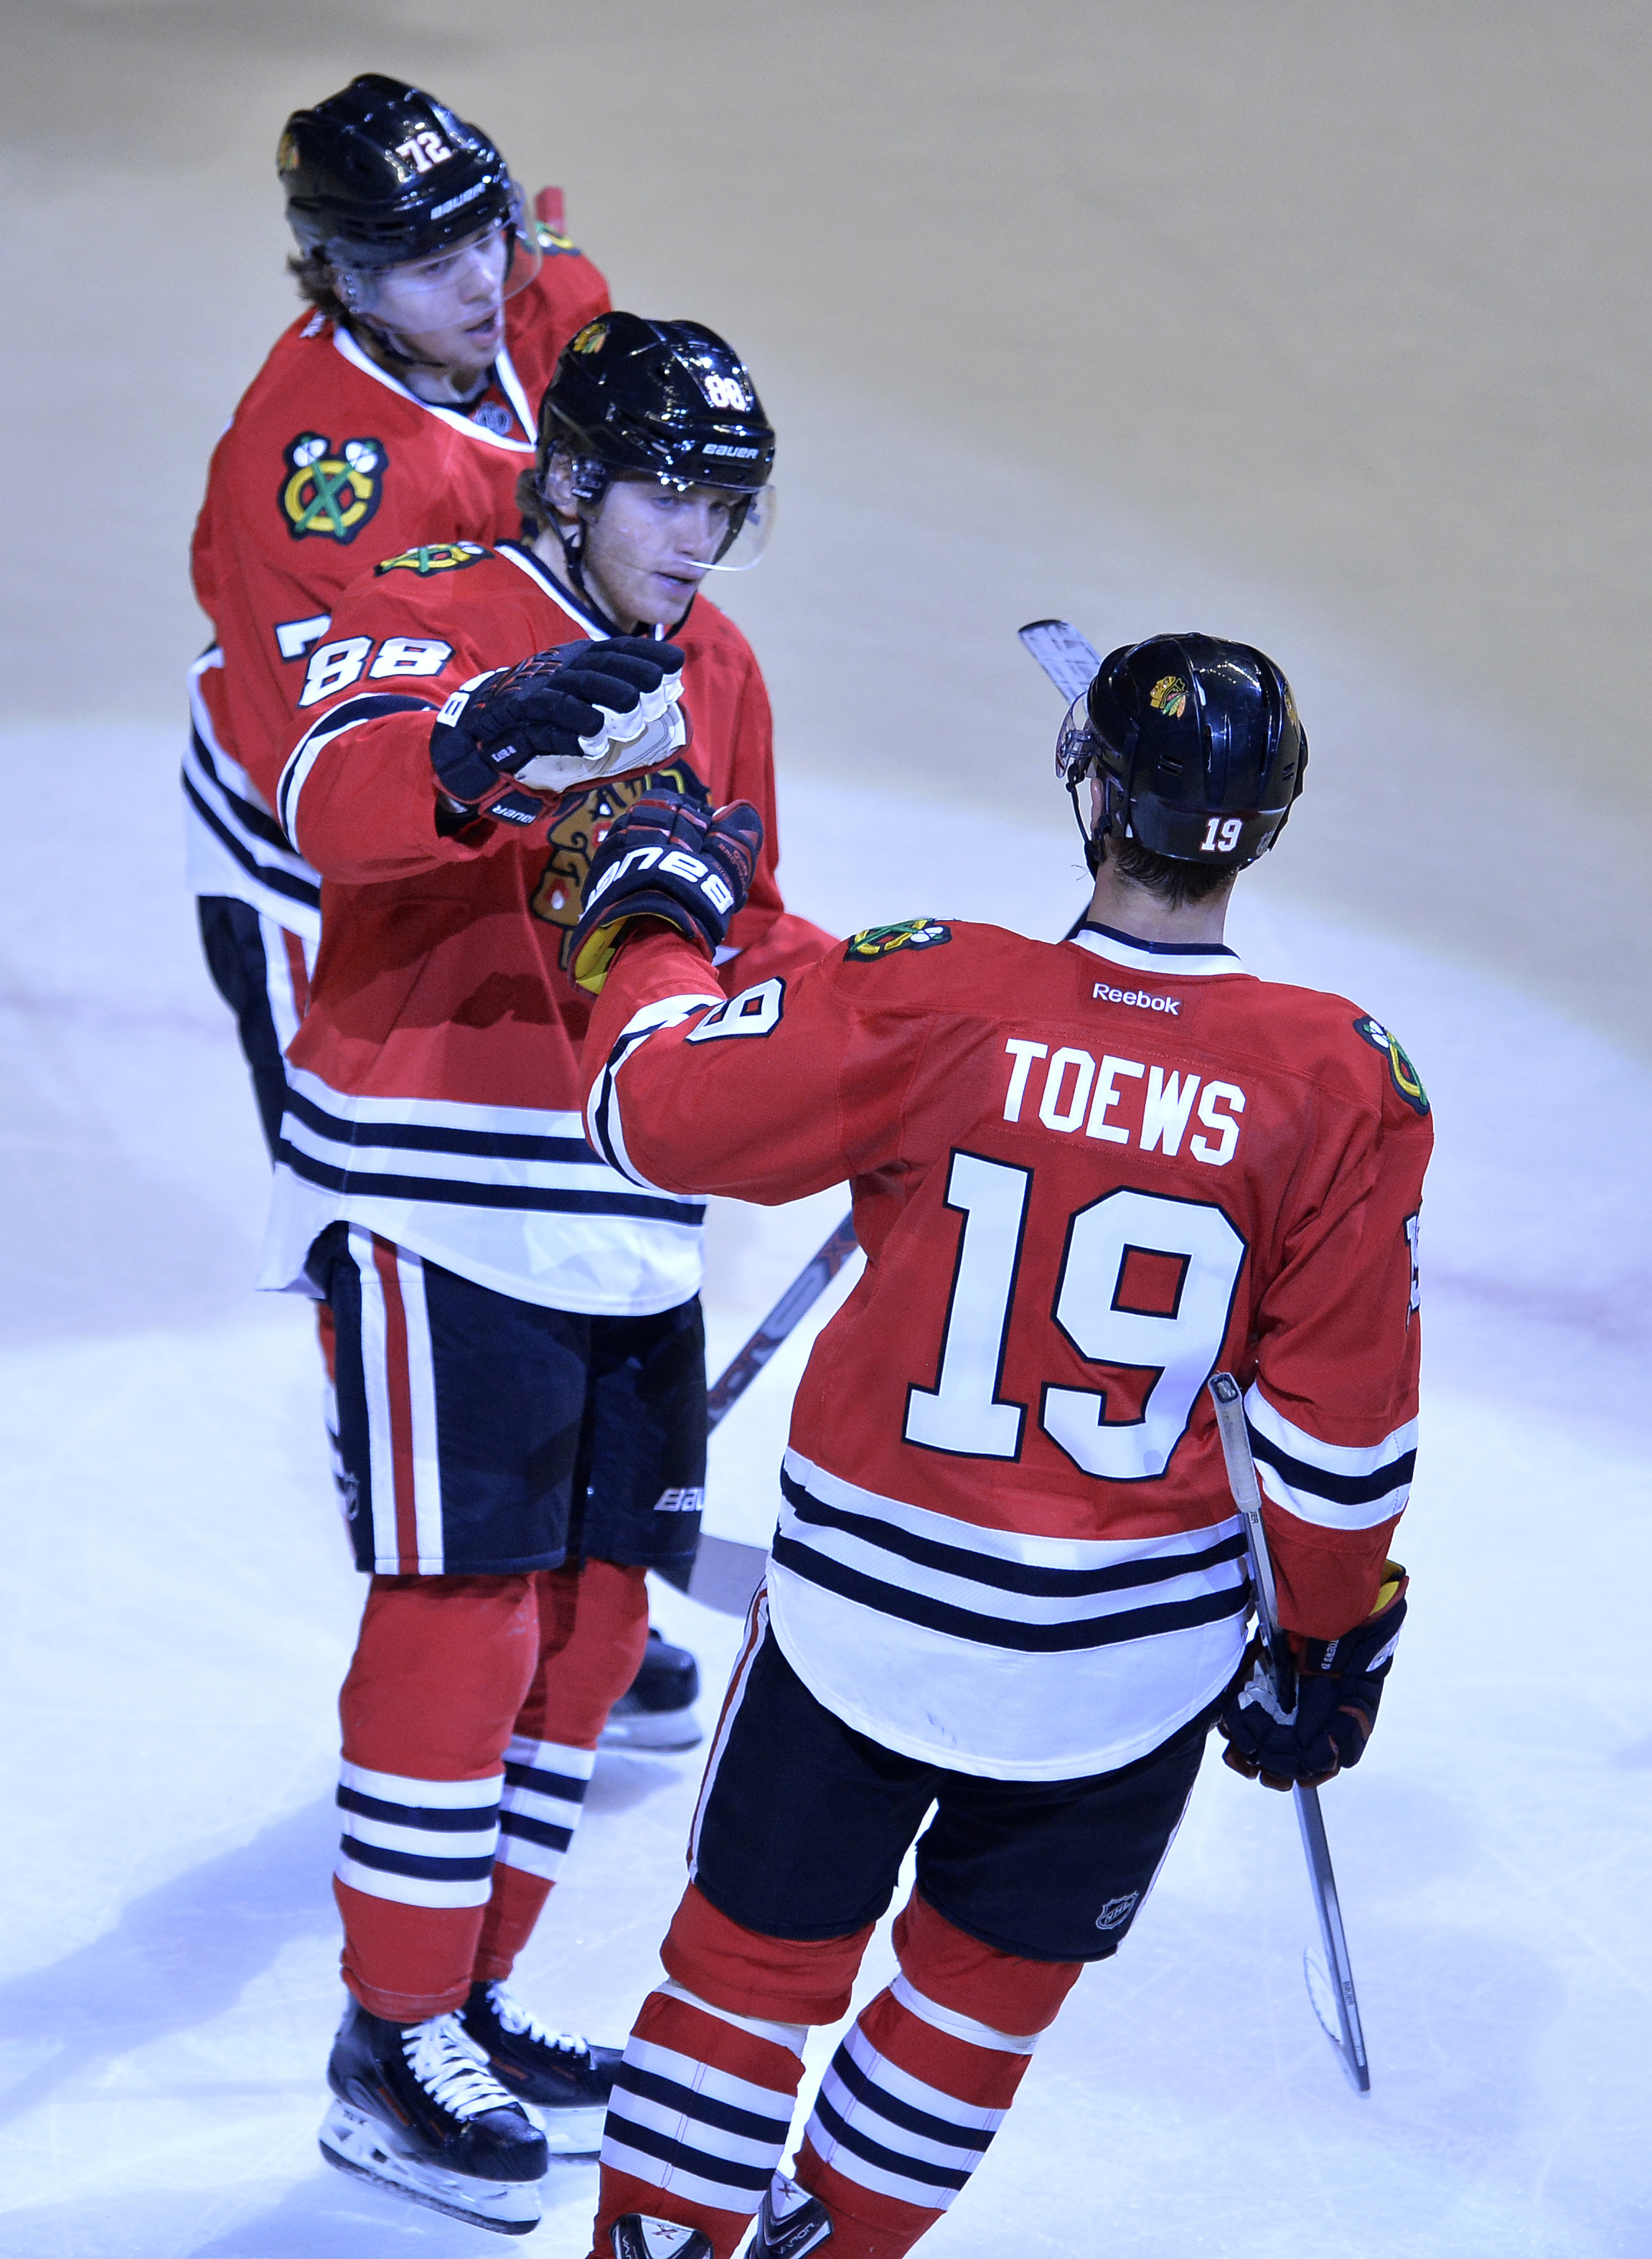 Chicago Blackhawks' Patrick Kane (88), celebrates with teammate Jonathan Toews (19), while Artemi Panarin (72), of Russia, looks on after Kane scored a goal during the third period of an NHL hockey game against the Columbus Blue Jackets Saturday, Oct. 17,